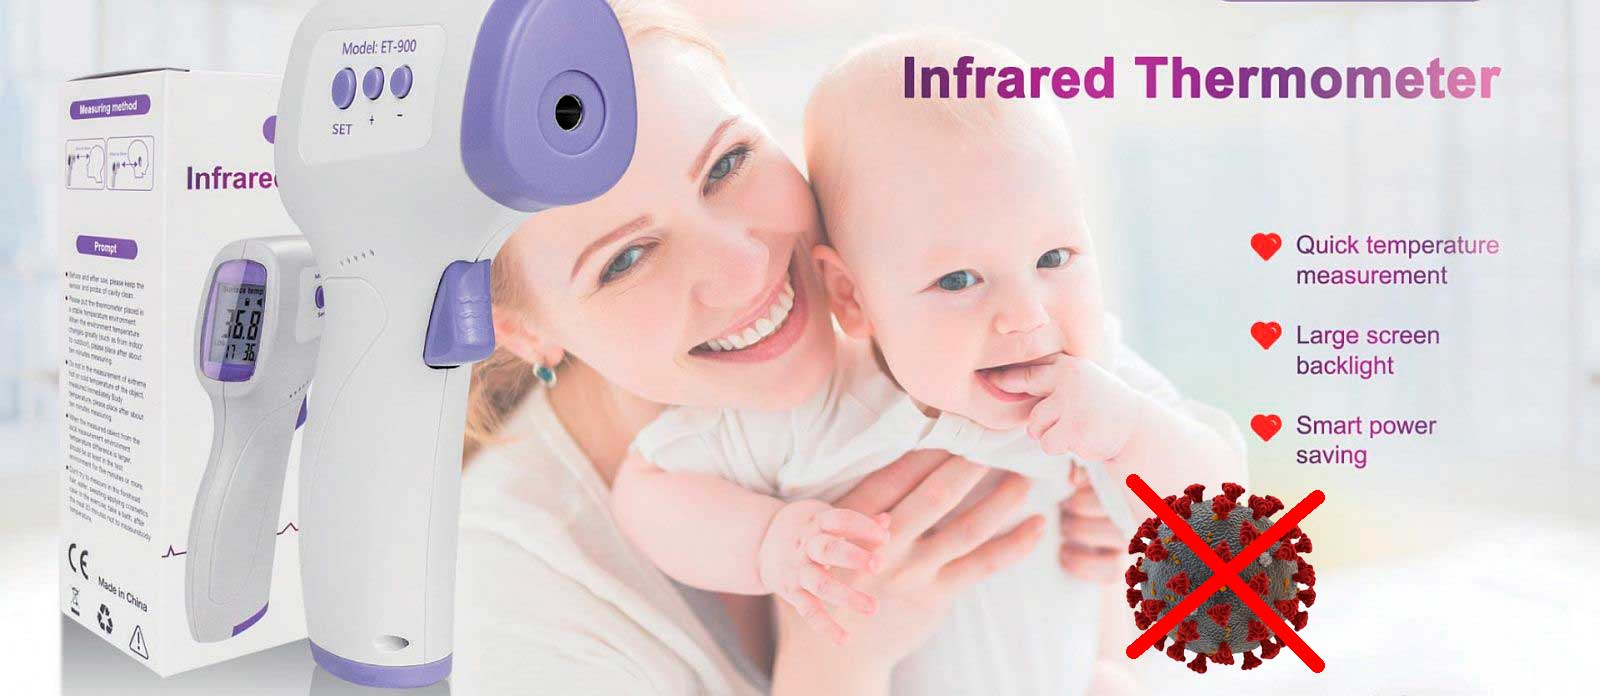 Infrared Forehead Thermometer Netum ET-900 - No COVID-19